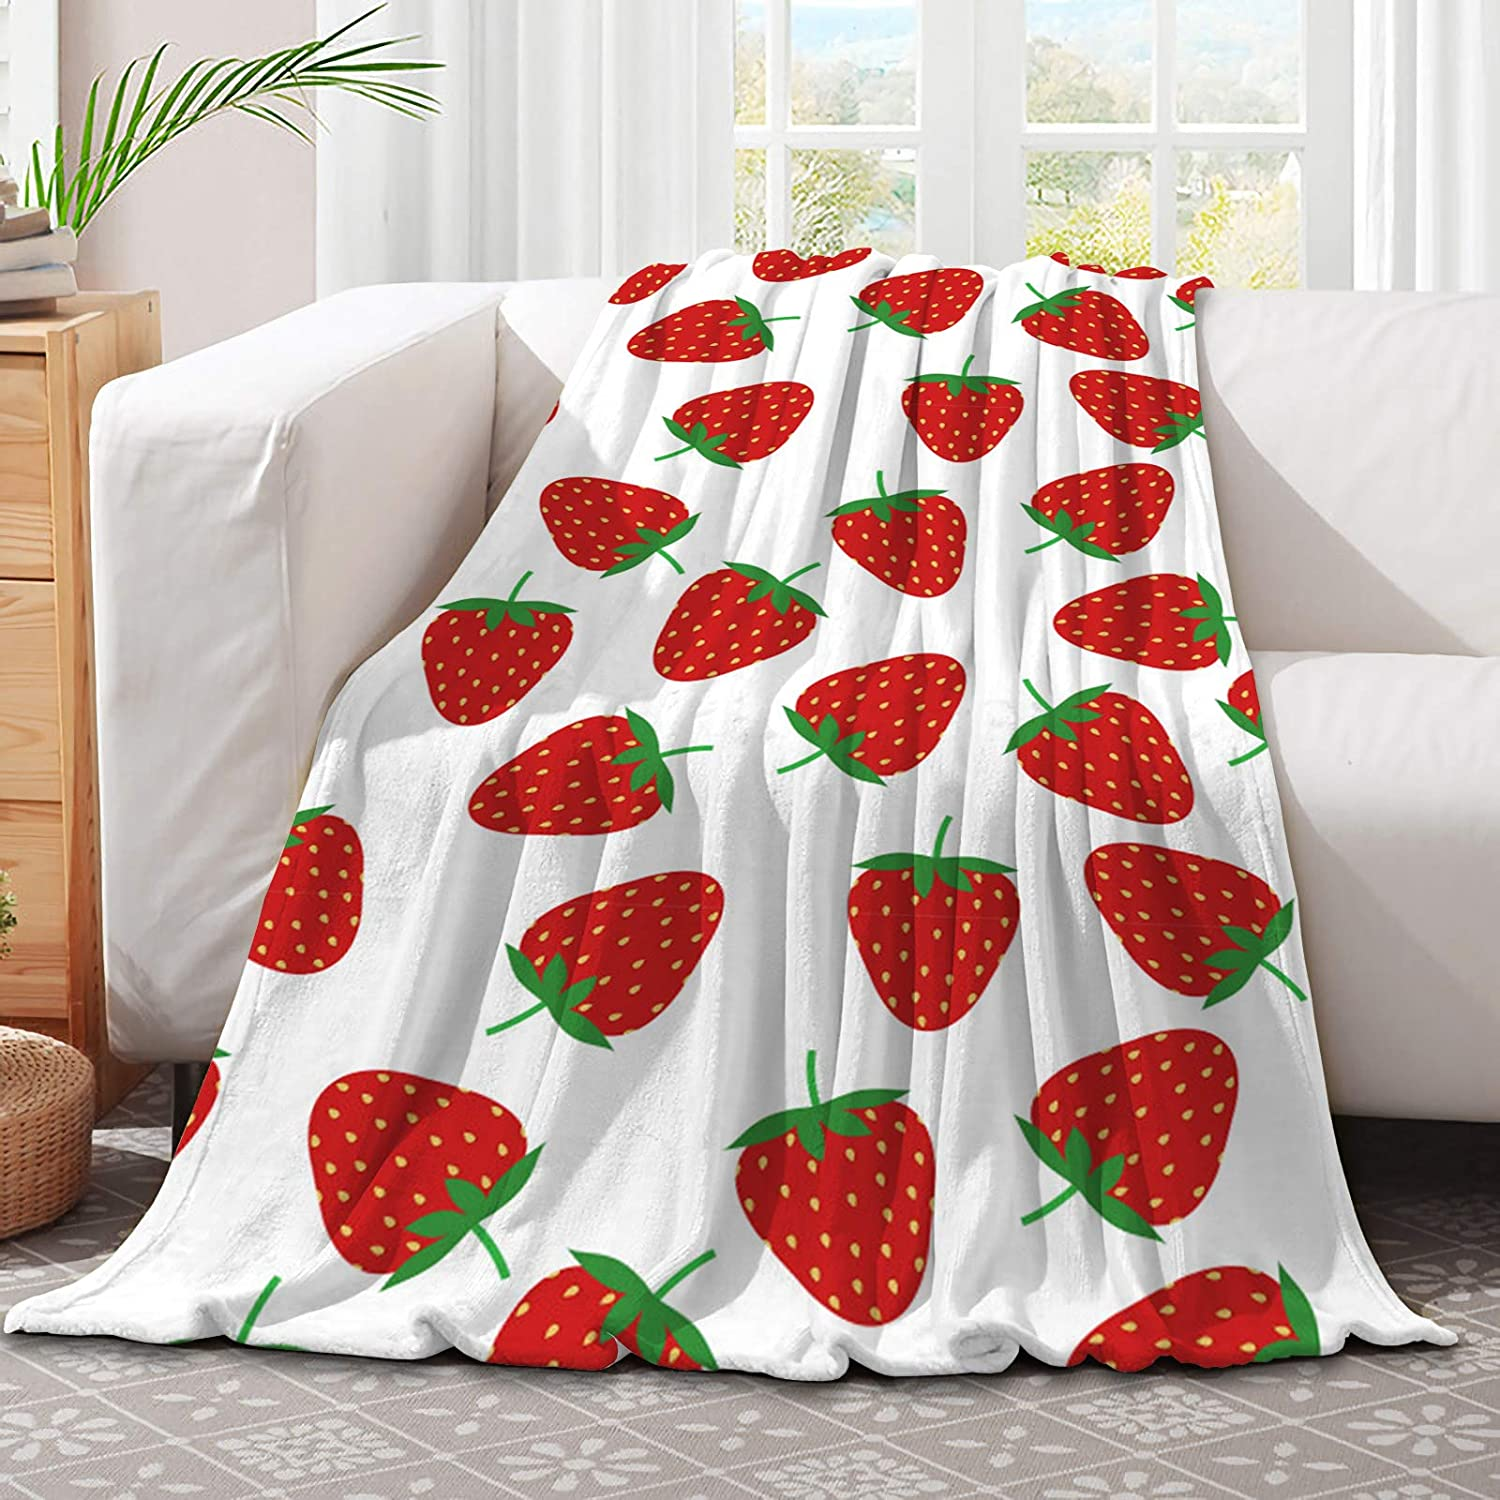 321DESIGN Cute Red Strawberry Microfiber Flannel for Blankets Free shipping anywhere in Seattle Mall the nation Co